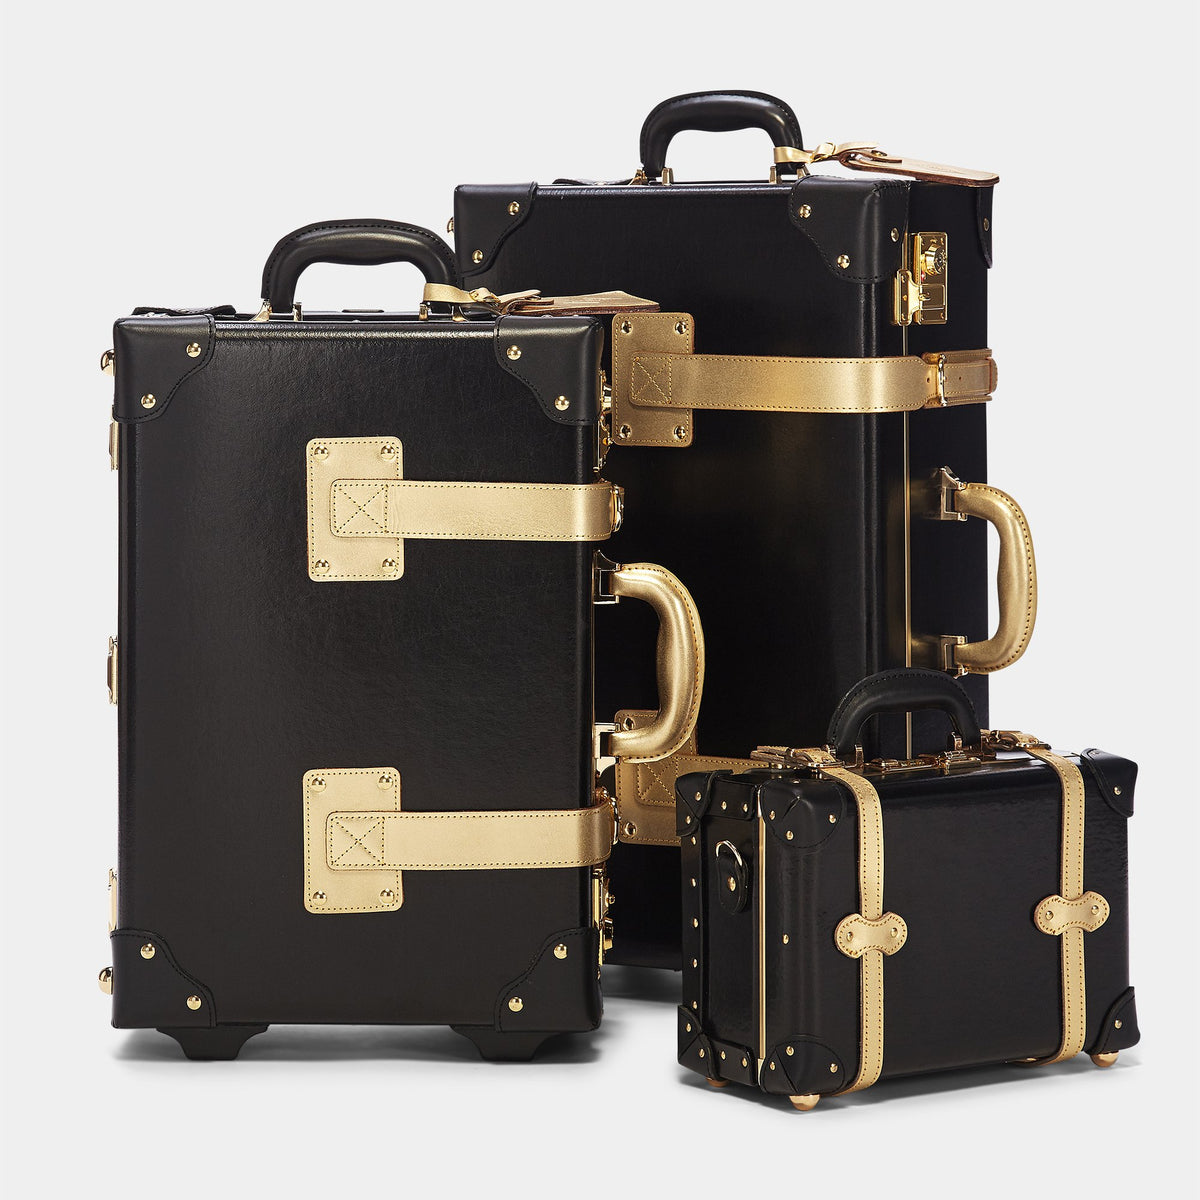 The Soprano Carryon in Black - Vintage Style Leather Case - Carryon with matching Soprano cases